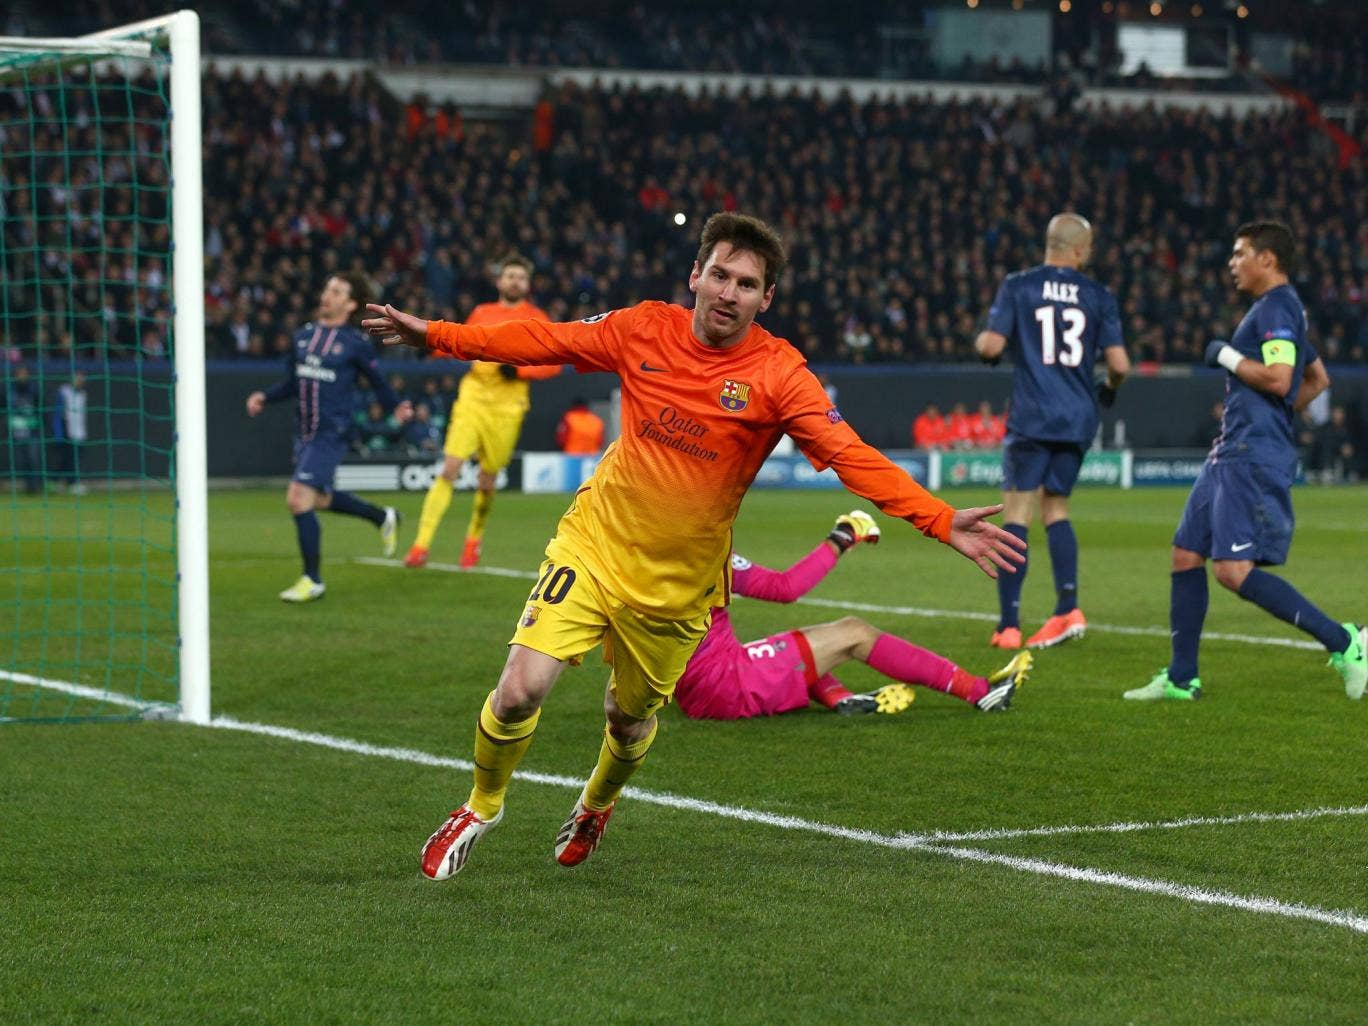 Barcelona forward Lionel Messi scores against PSG in the Champions League